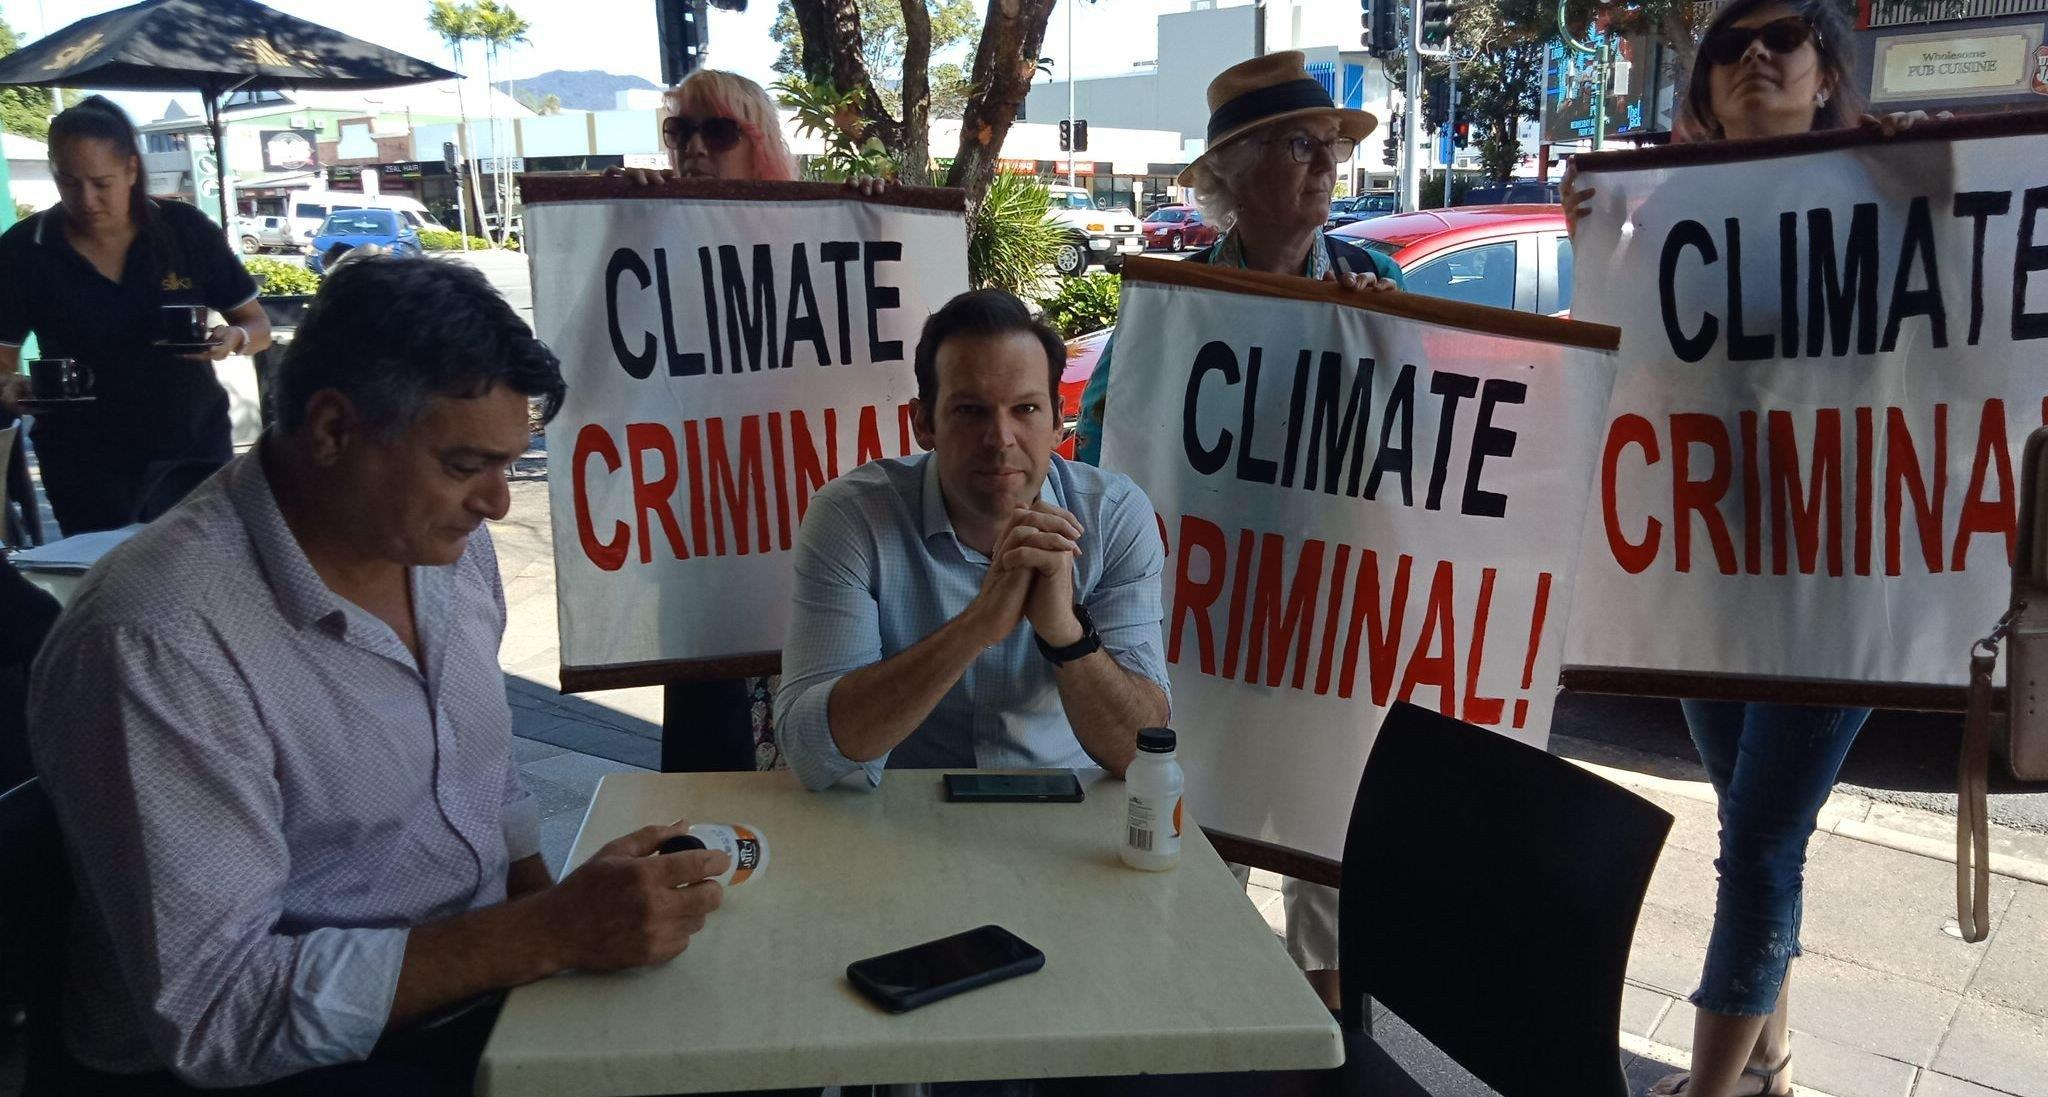 Resources Minister Matt Canavan's juice break is cut short.